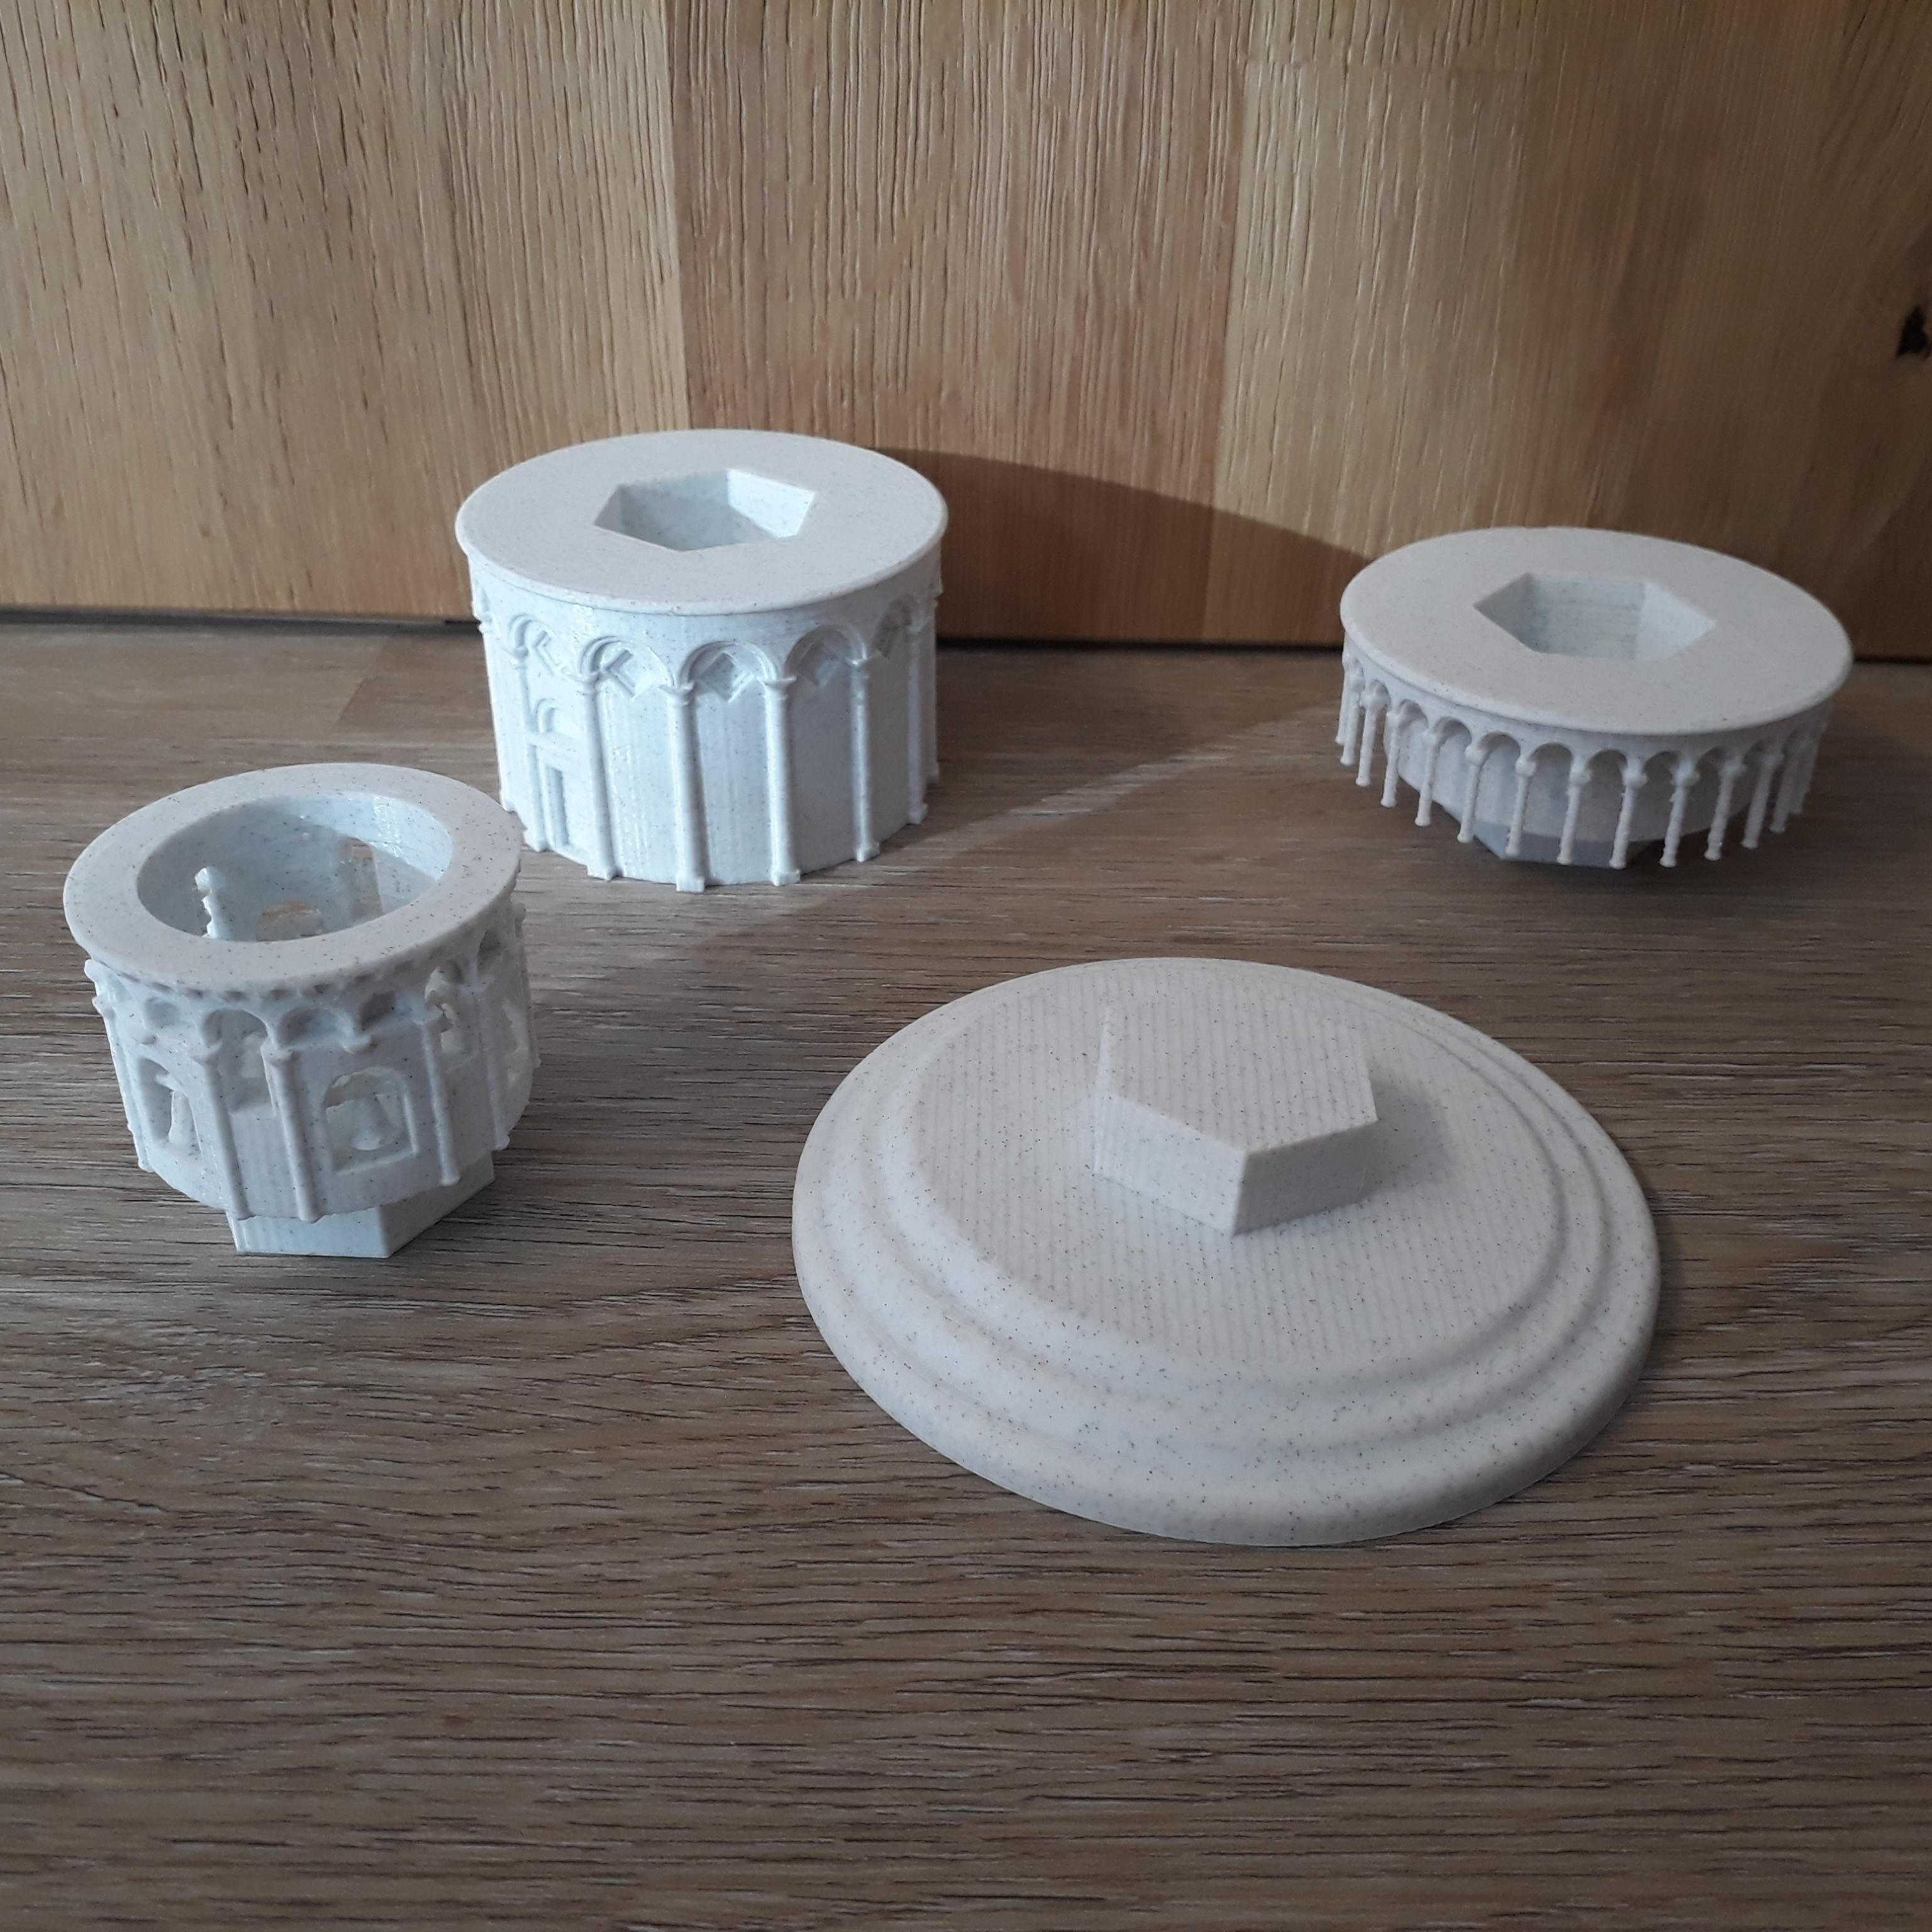 20200212_104110.jpg Download STL file Leaning Tower of Pisa • 3D printing object, Chrisibub